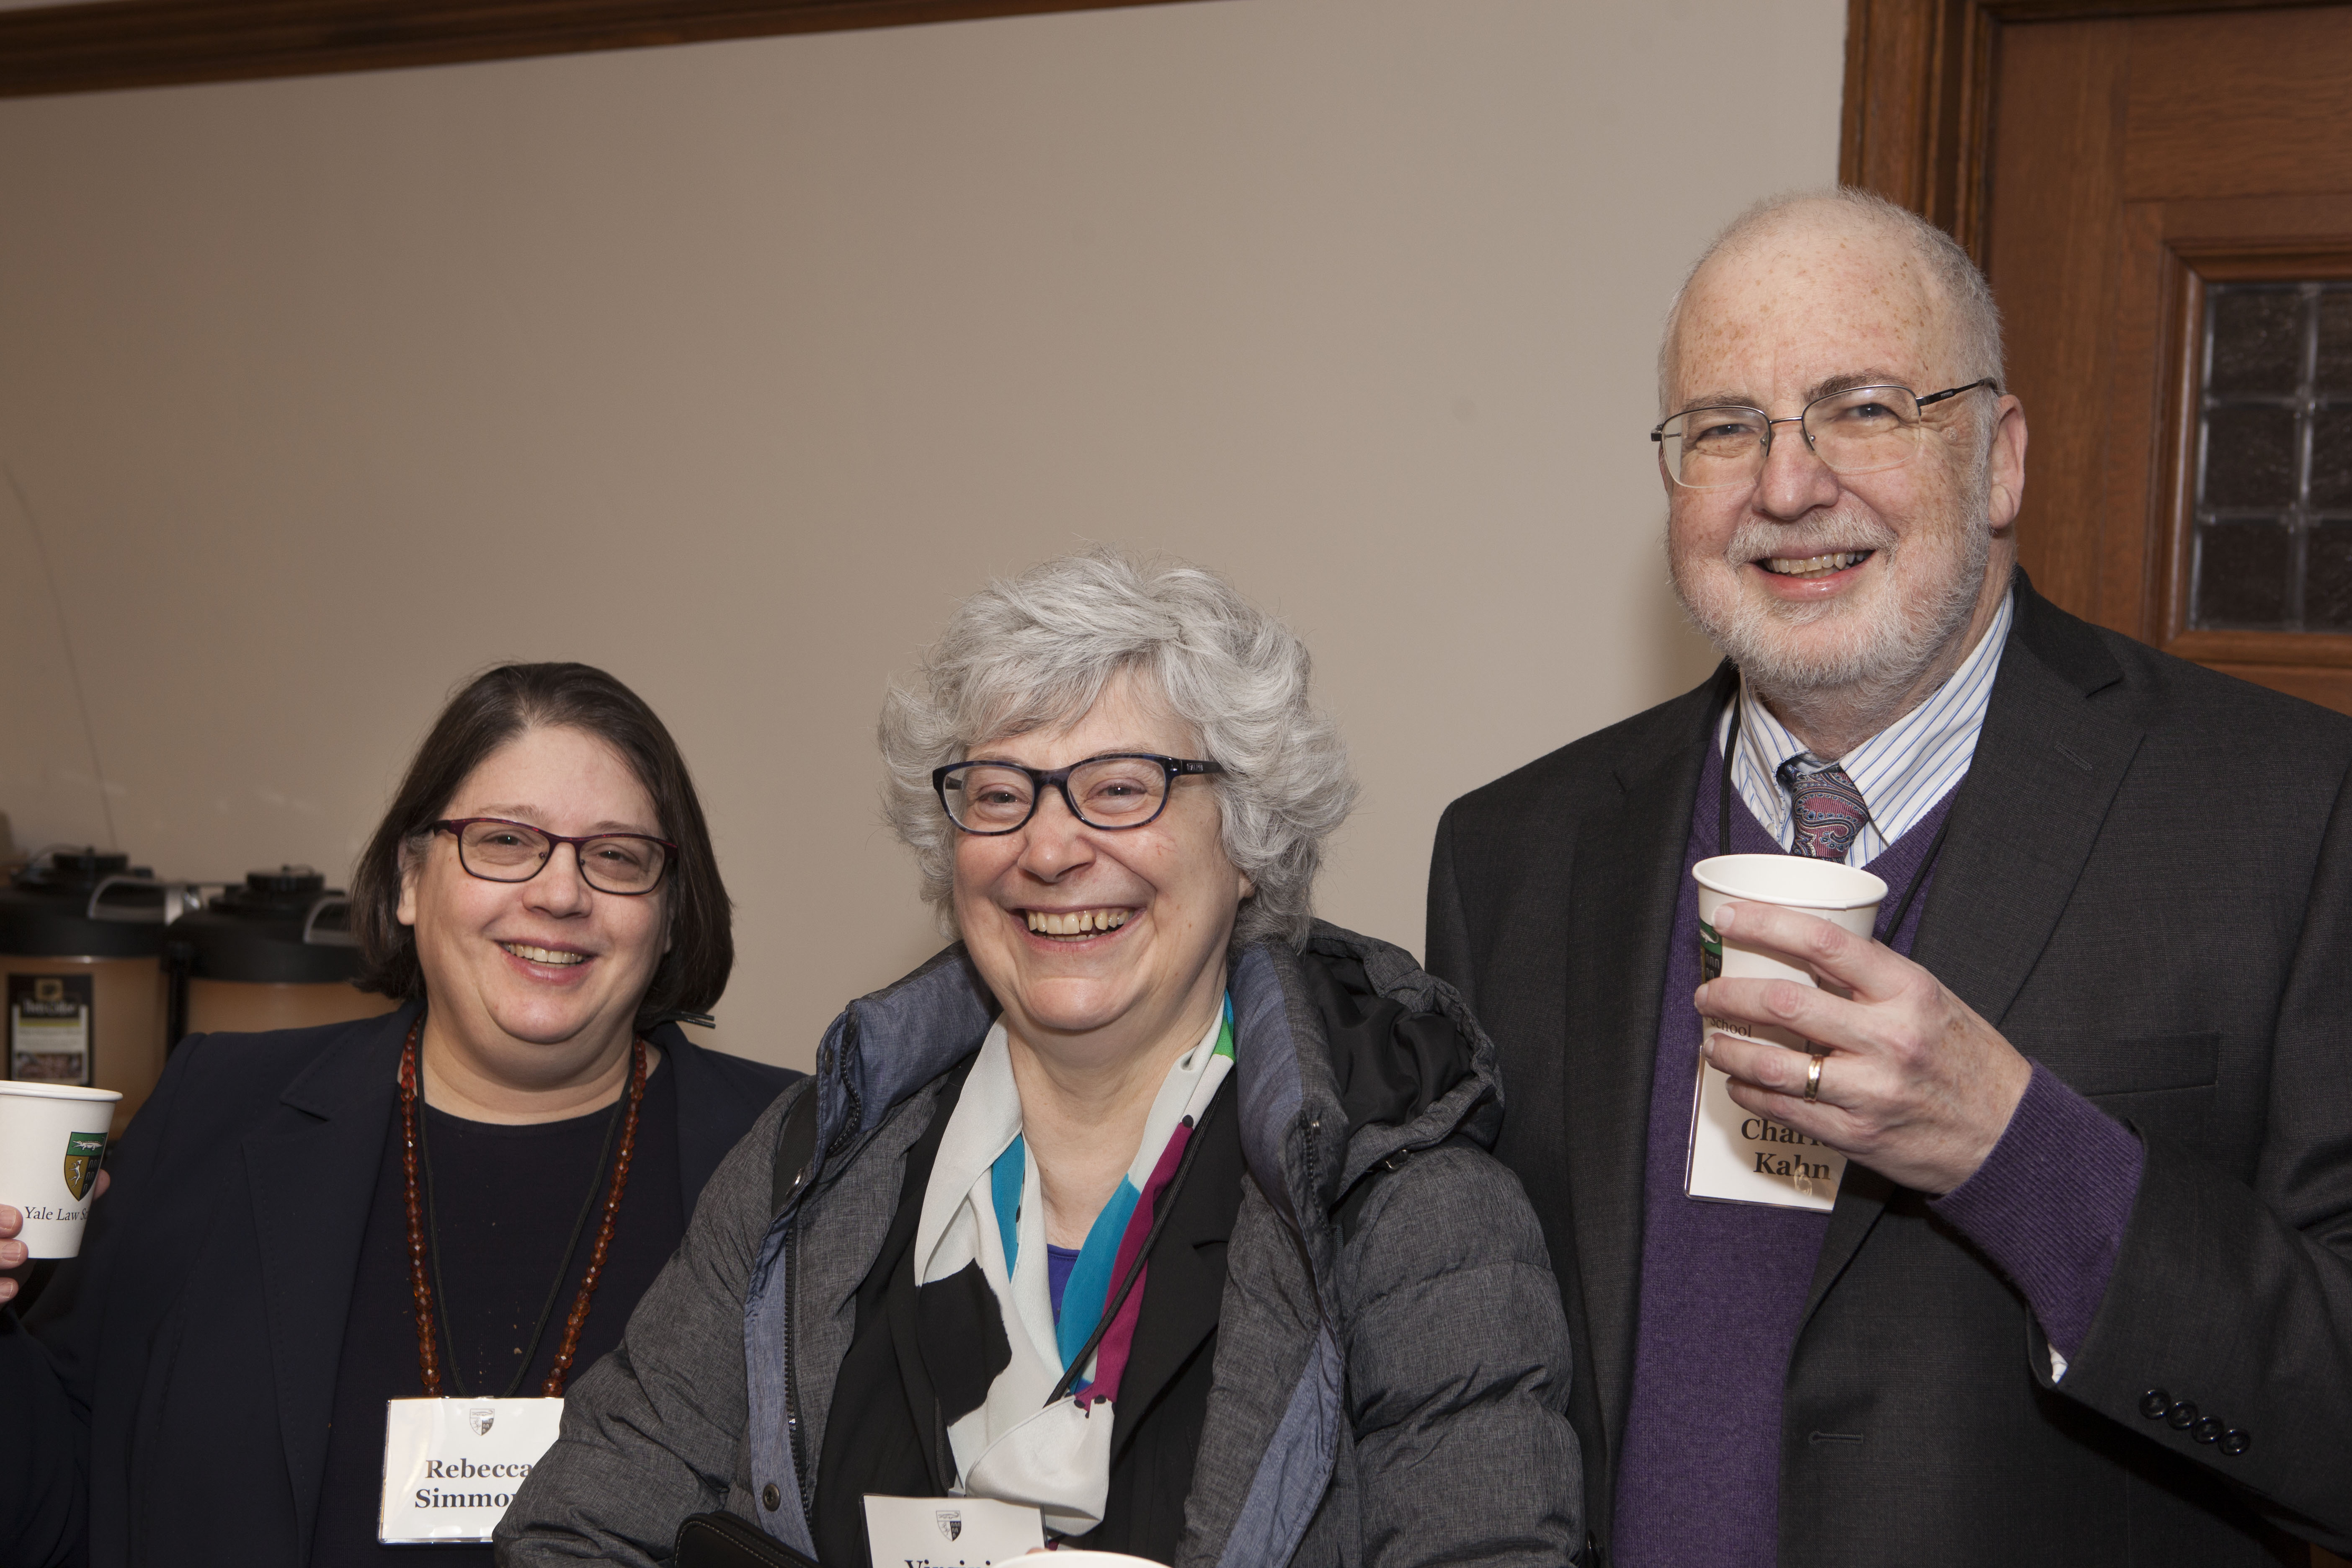 Rebecca Simmons and U. of Illinois at Urbana-Champagne Finance Profs. Virginia Grace France and Charles Kahn